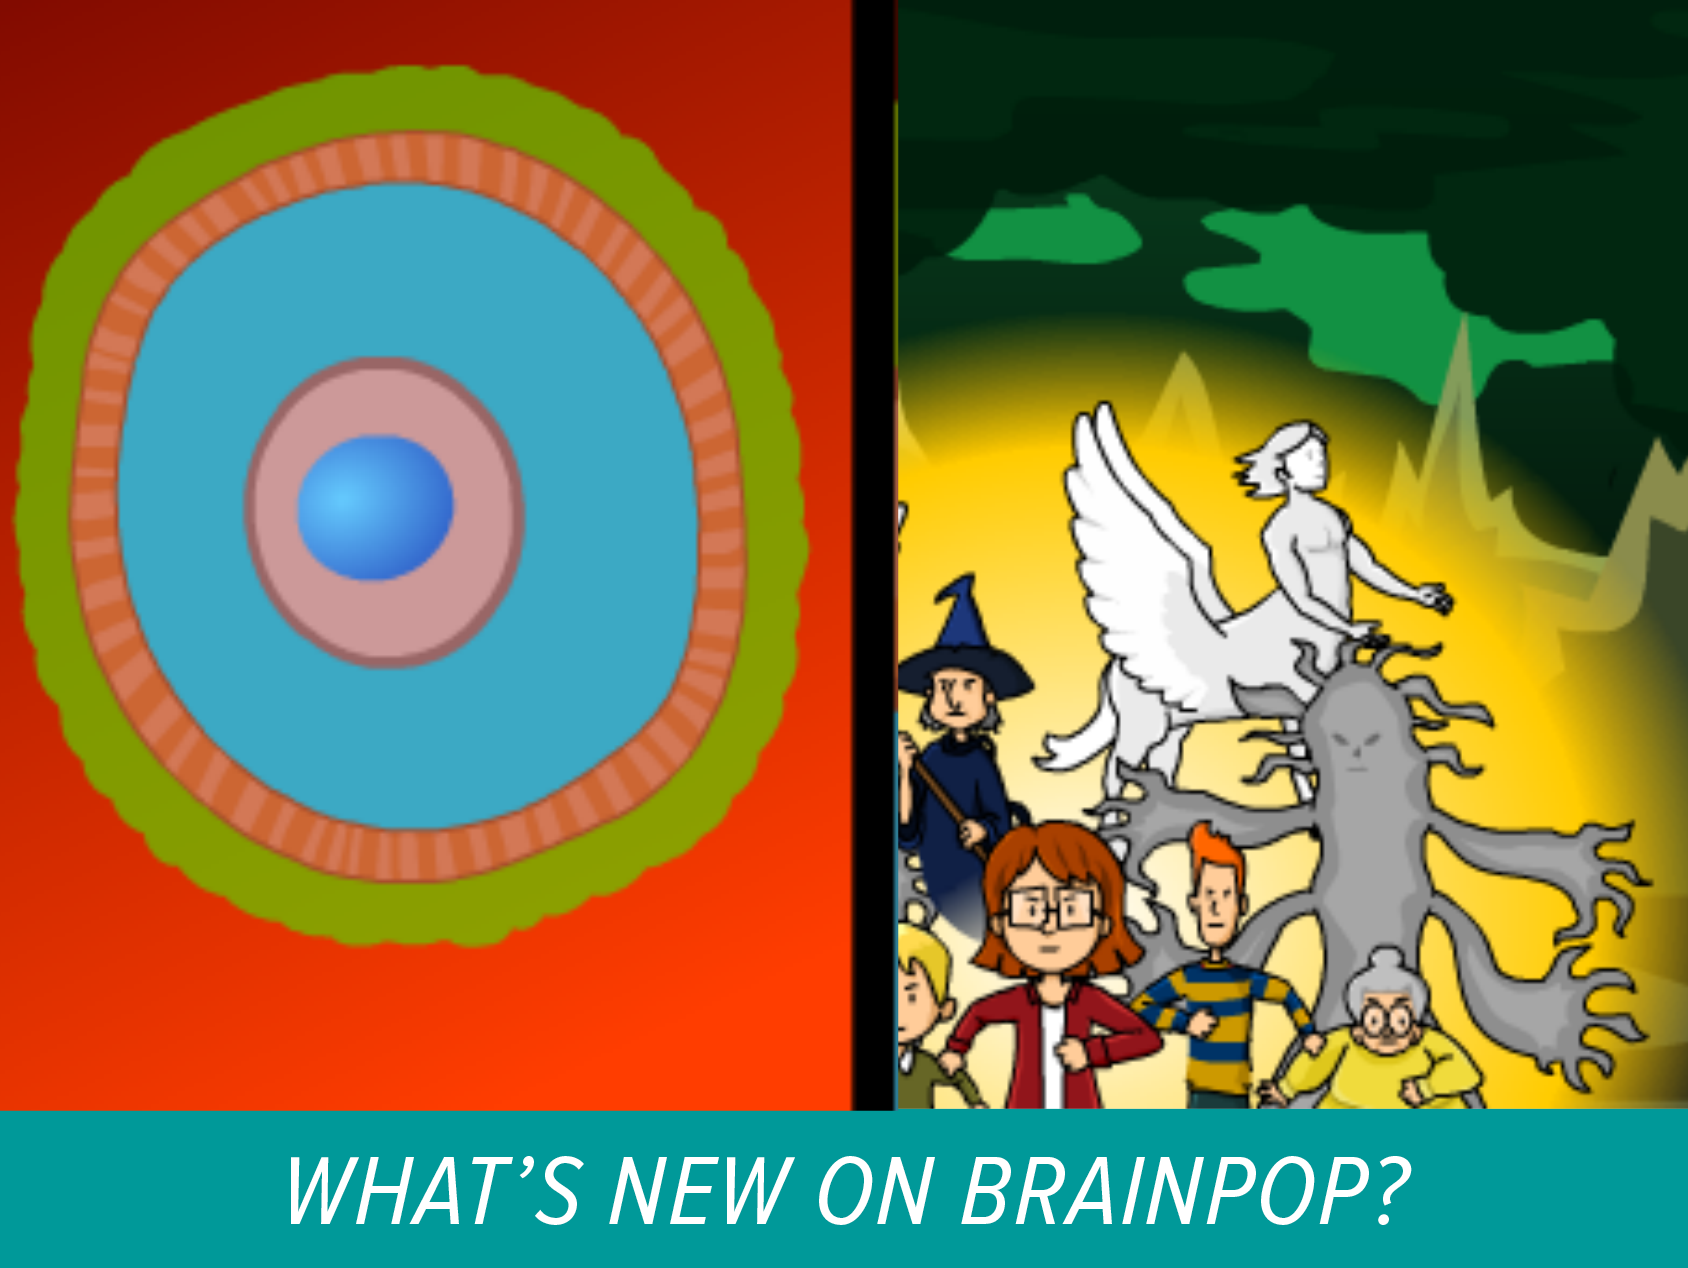 Two new movies now on BrainPOP